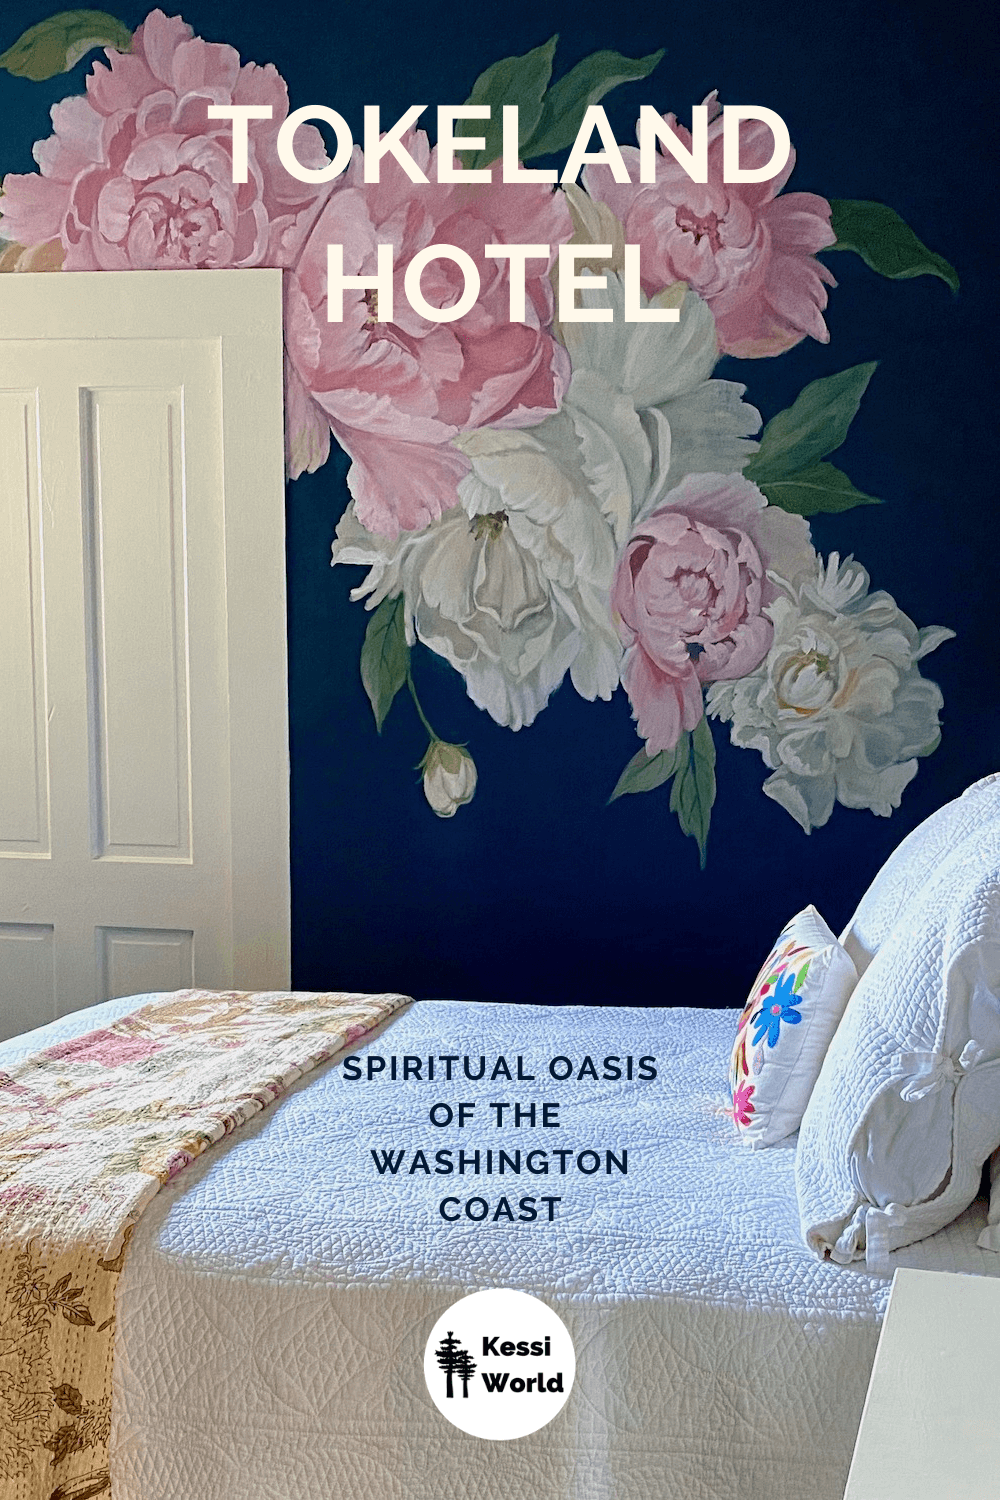 This Pinterest tile shows the interior of the Tokeland Hotel, which is the oldest continuous running hotel on the Washington Coast. This room has a bed with white linens and dark blue walls etched with watercolor peony flowers that are pink and white. There is a white door on the wall as well.